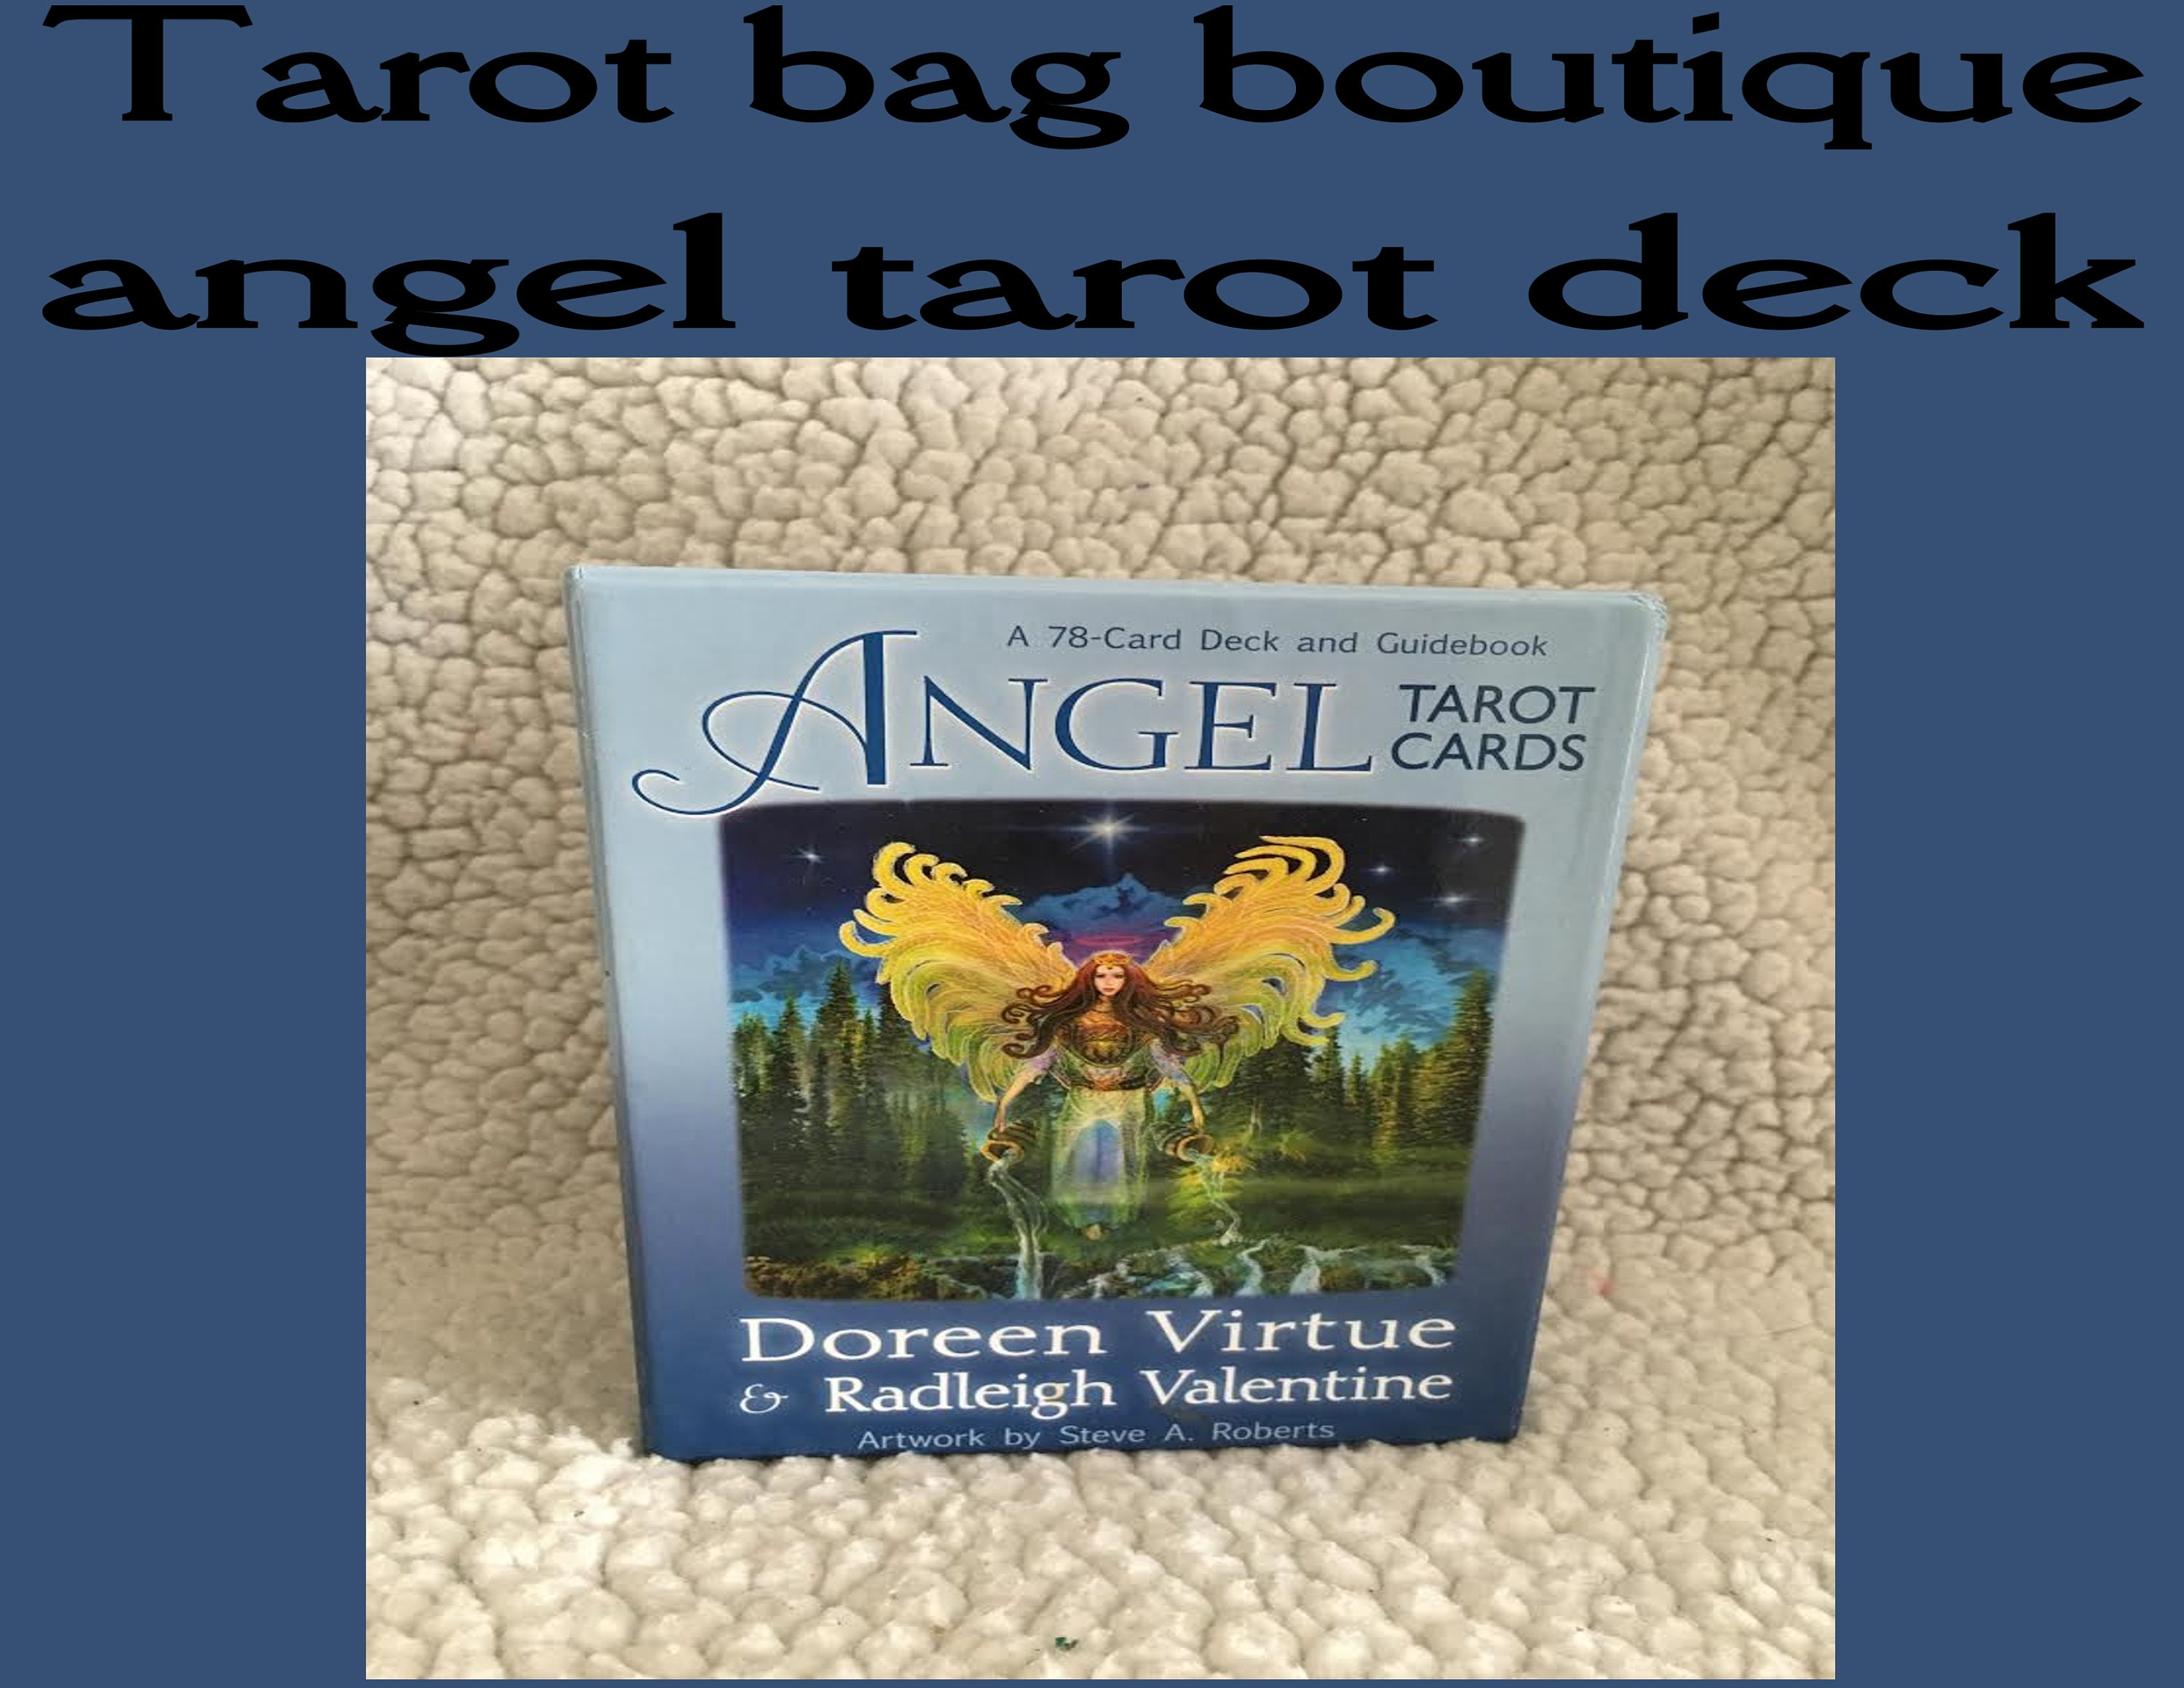 sale: Angles Tarot deck